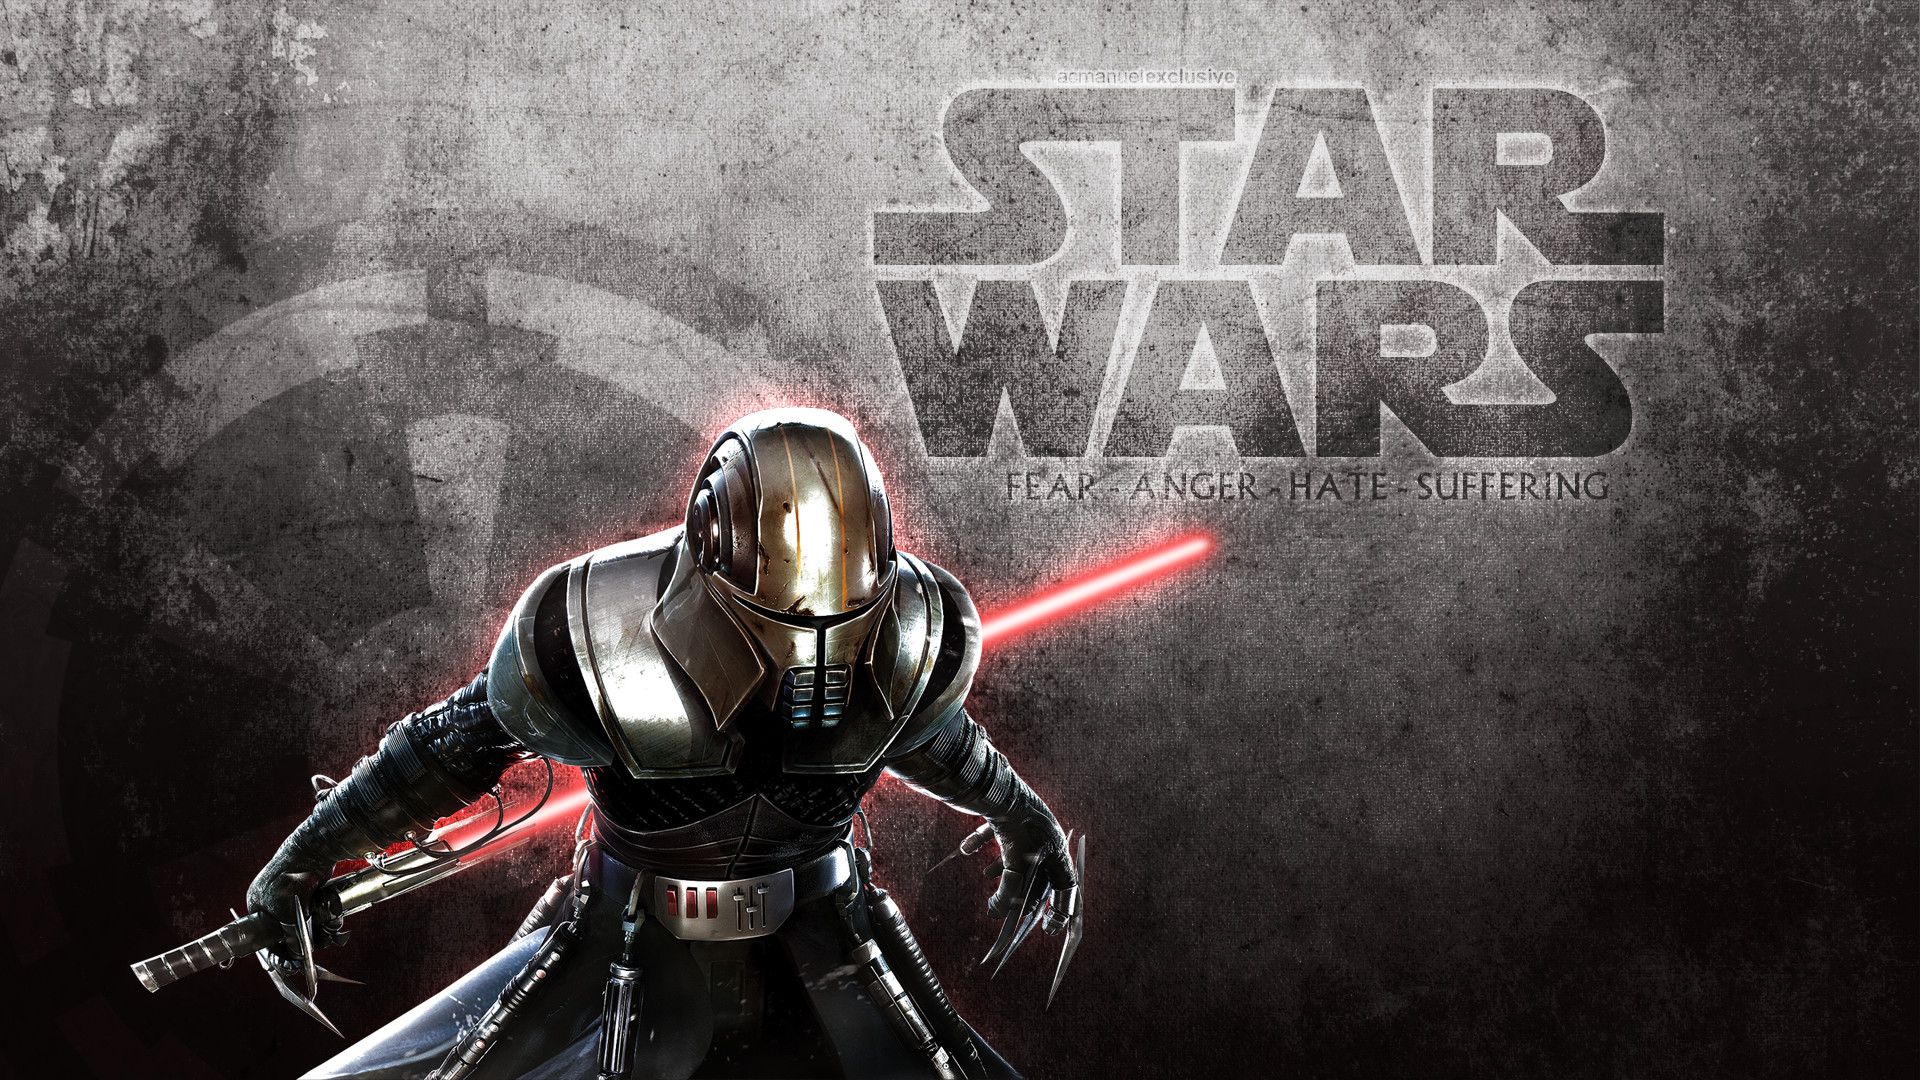 1920x1080 Star Wars High Resolution Wallpapers Group